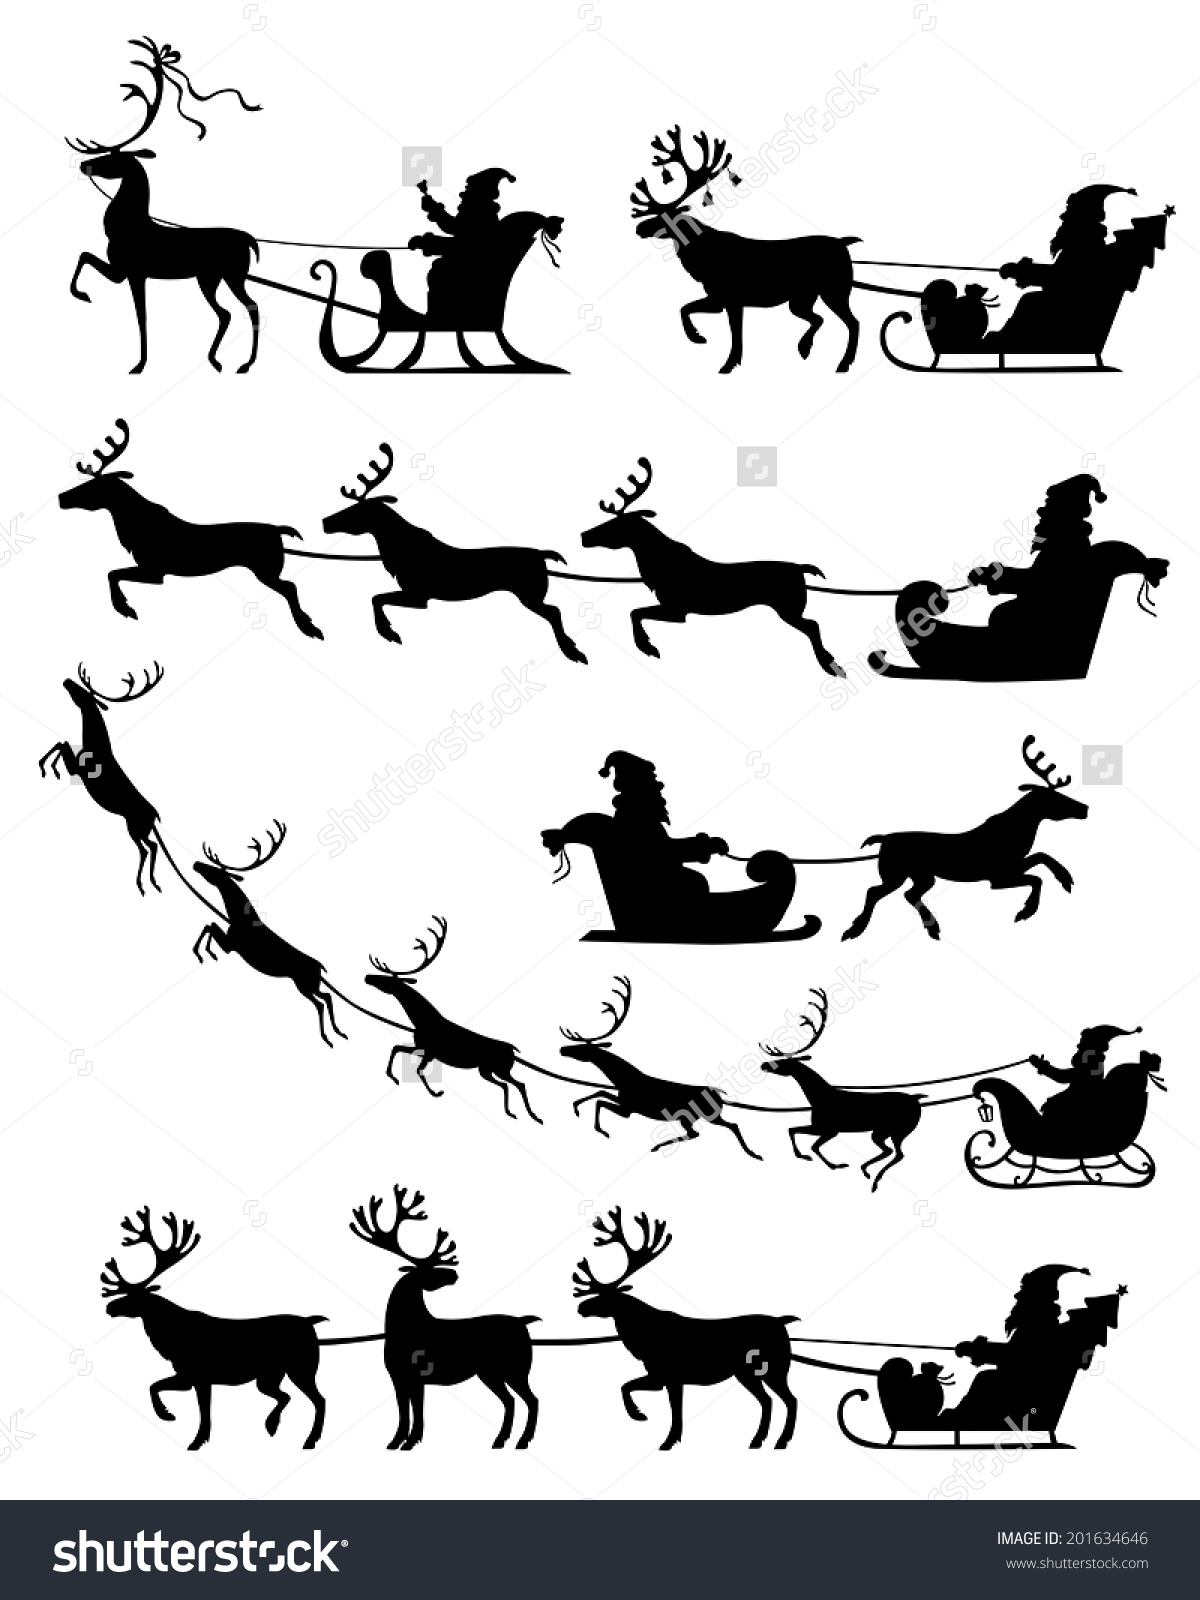 how to draw a reindeer flying